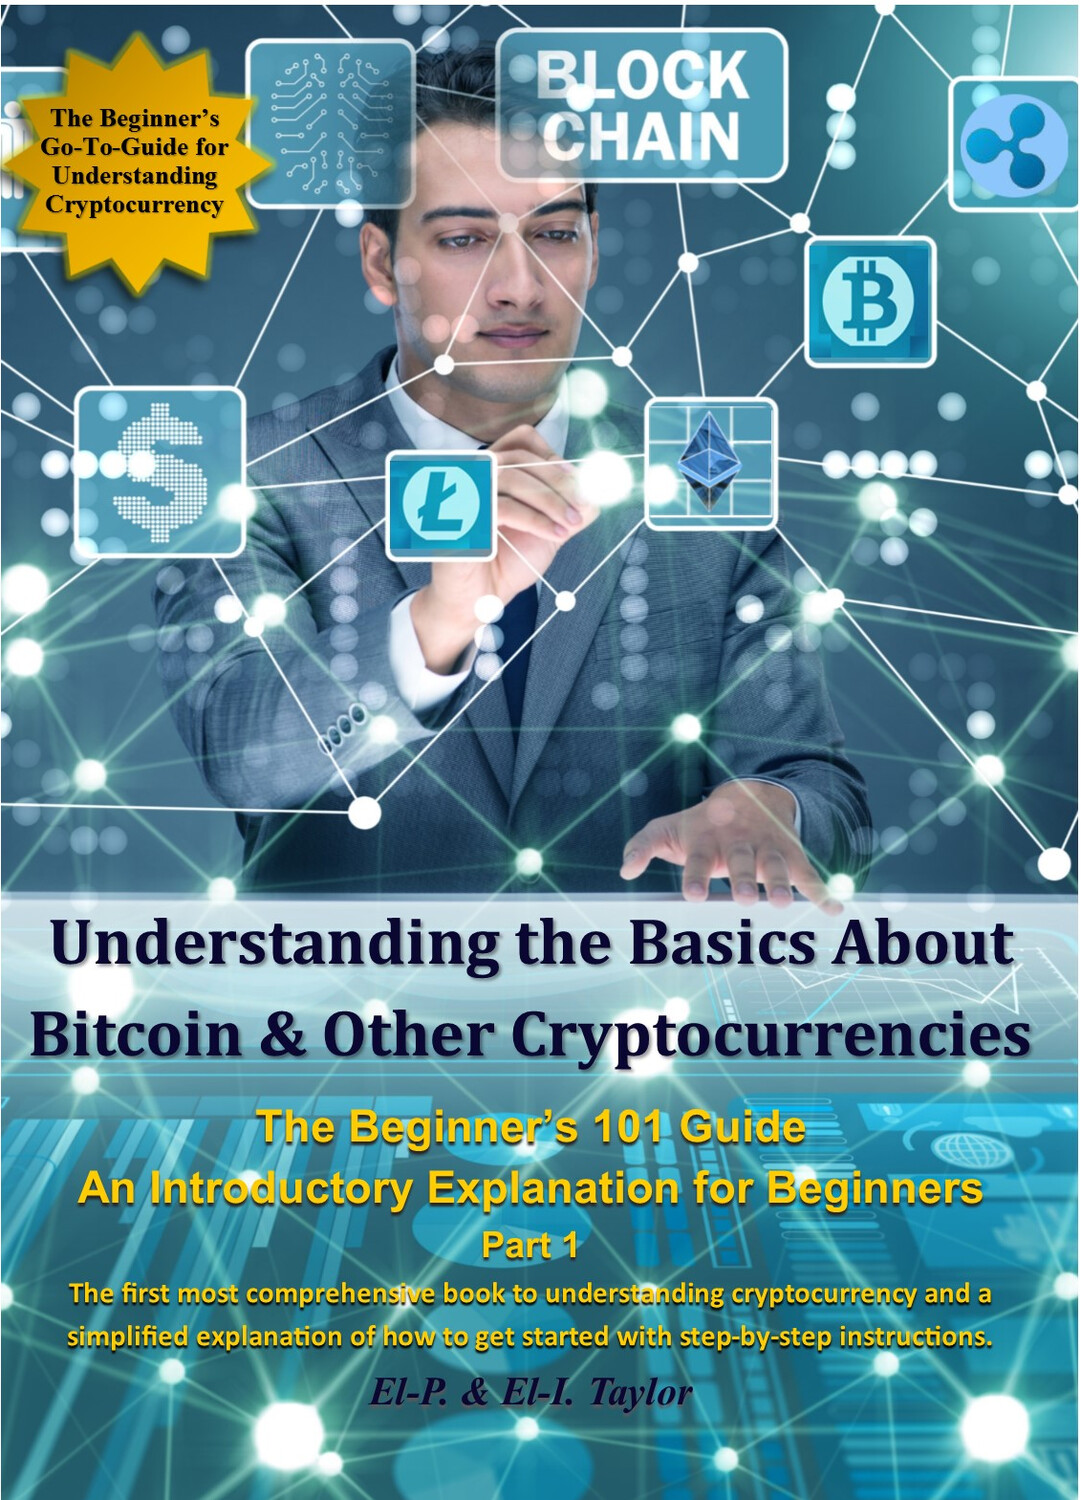 eBook (PDF) Understanding the Basics About Bitcoin & Other Cryptocurrencies, the Beginner's 101 Guide